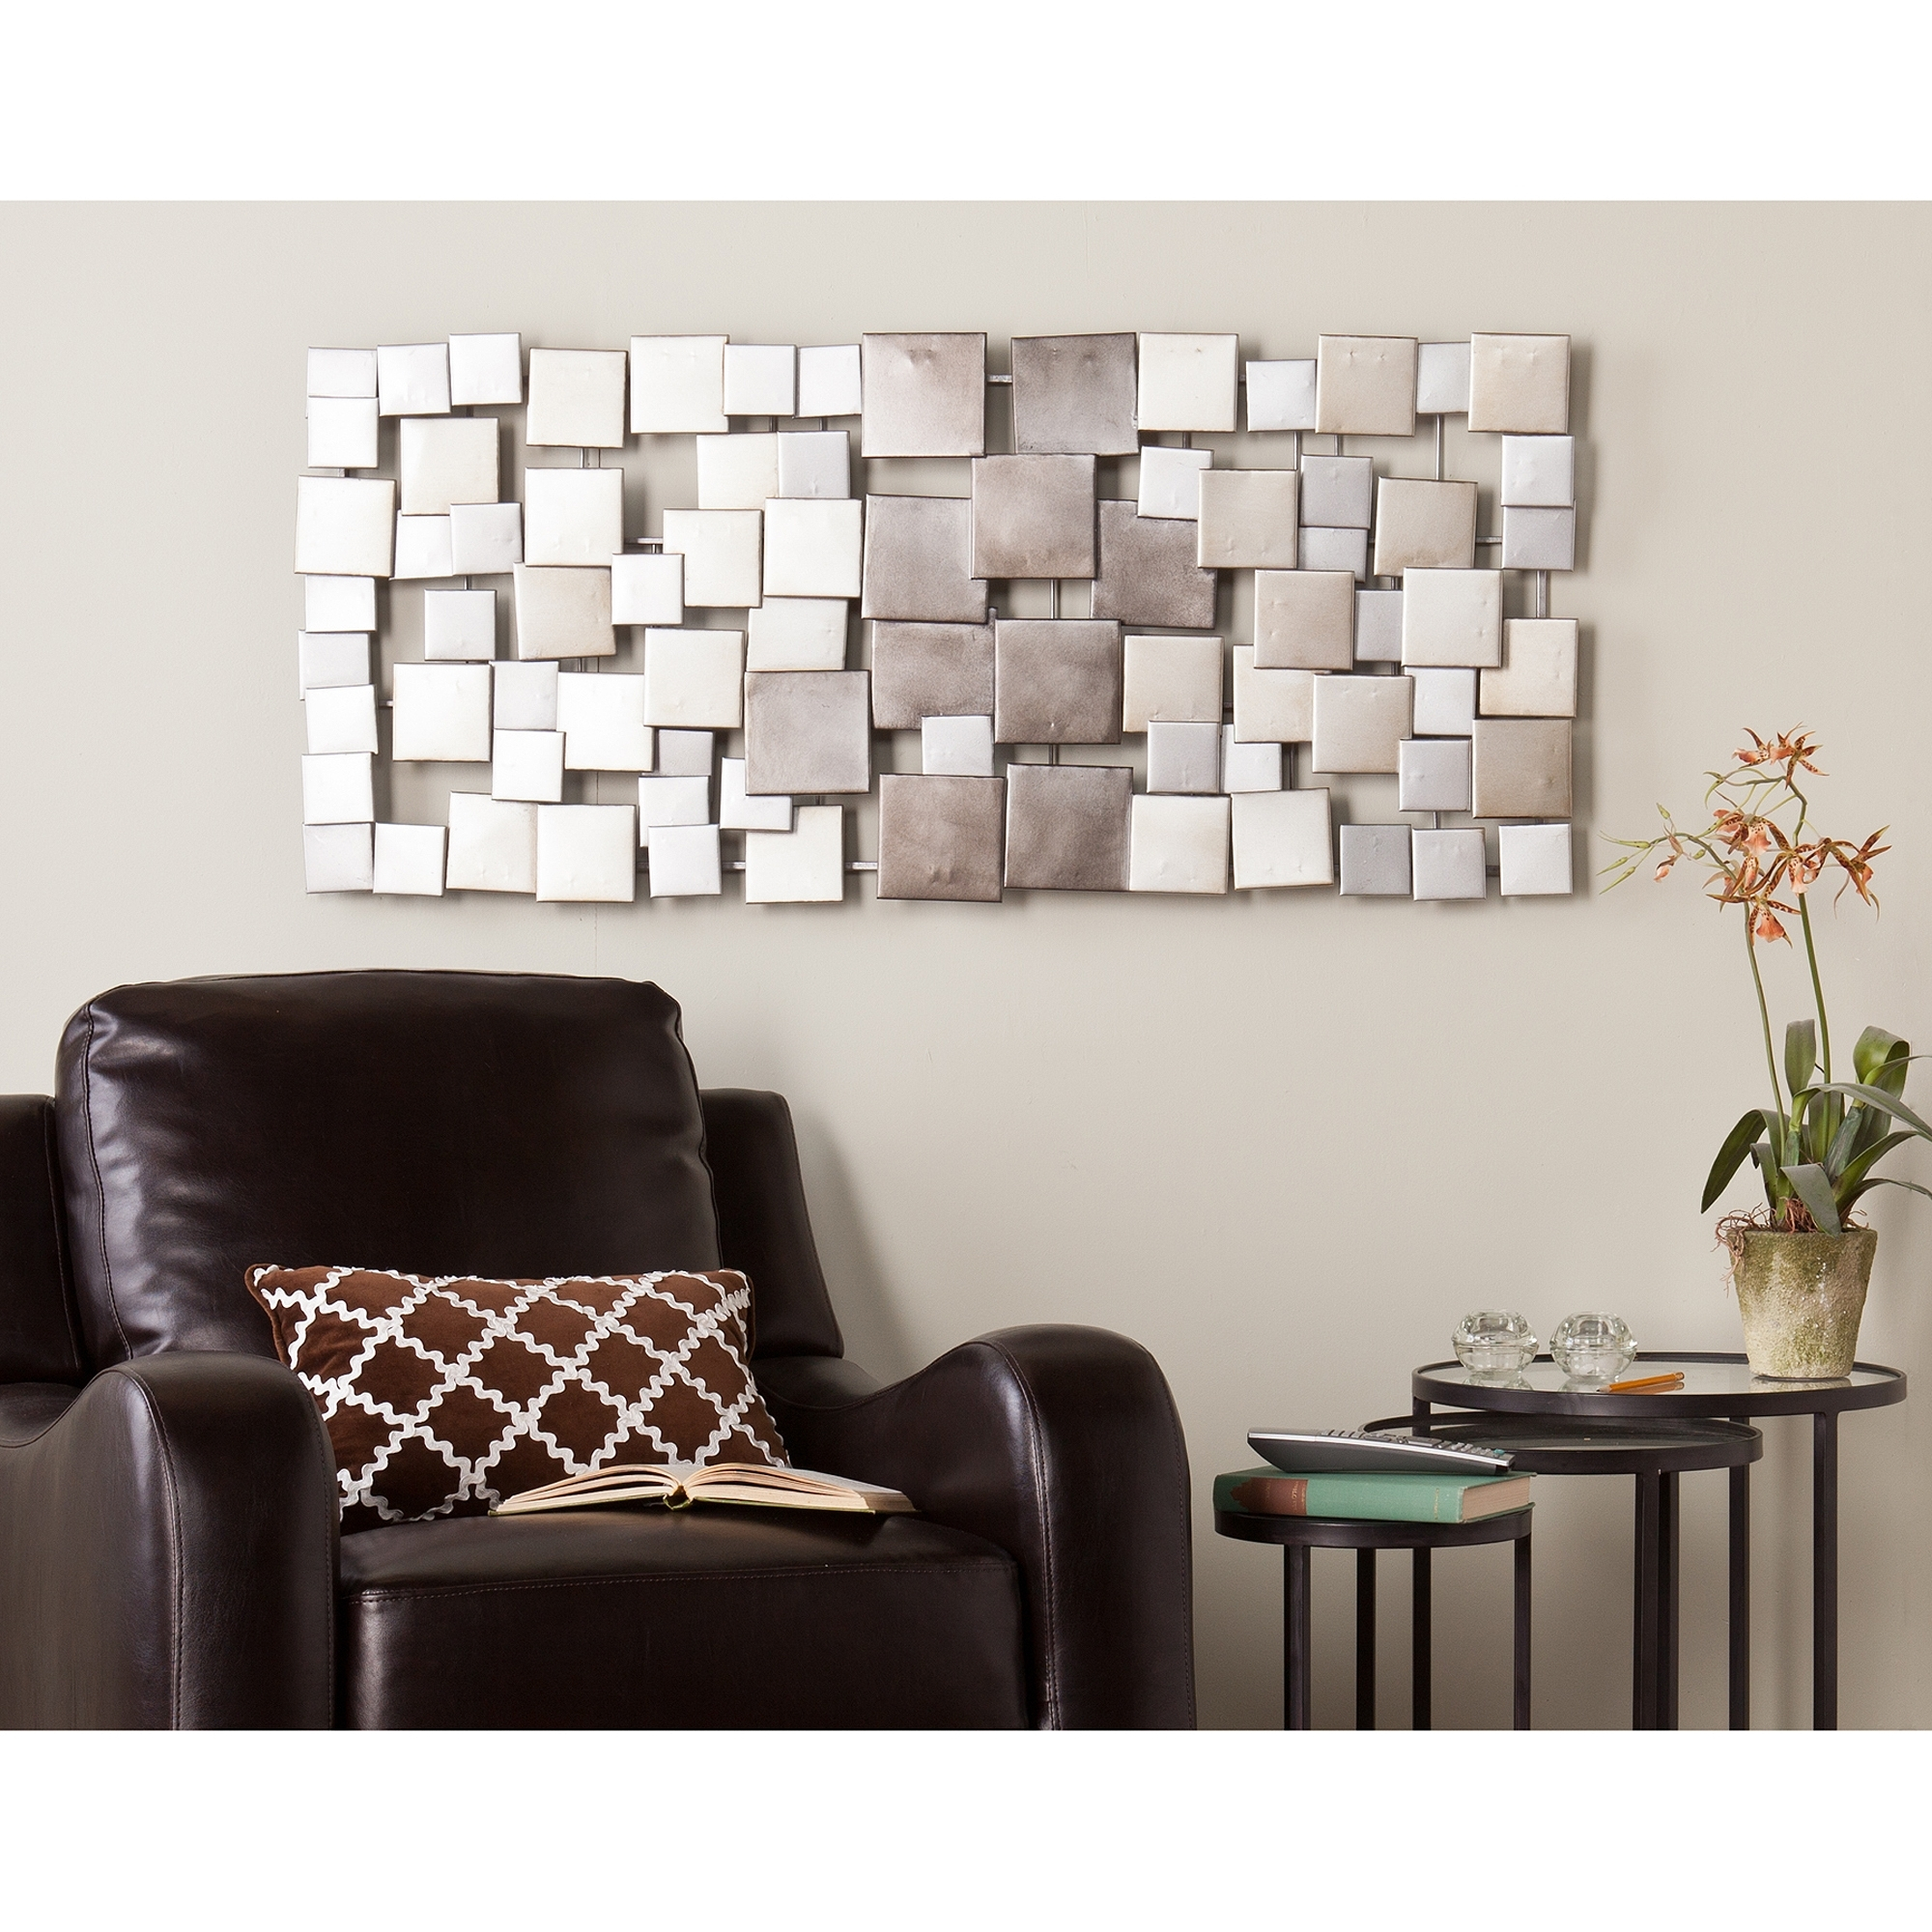 Metal Wall Art – Walmart For Most Popular Canvas Wall Art At Walmart (View 10 of 15)